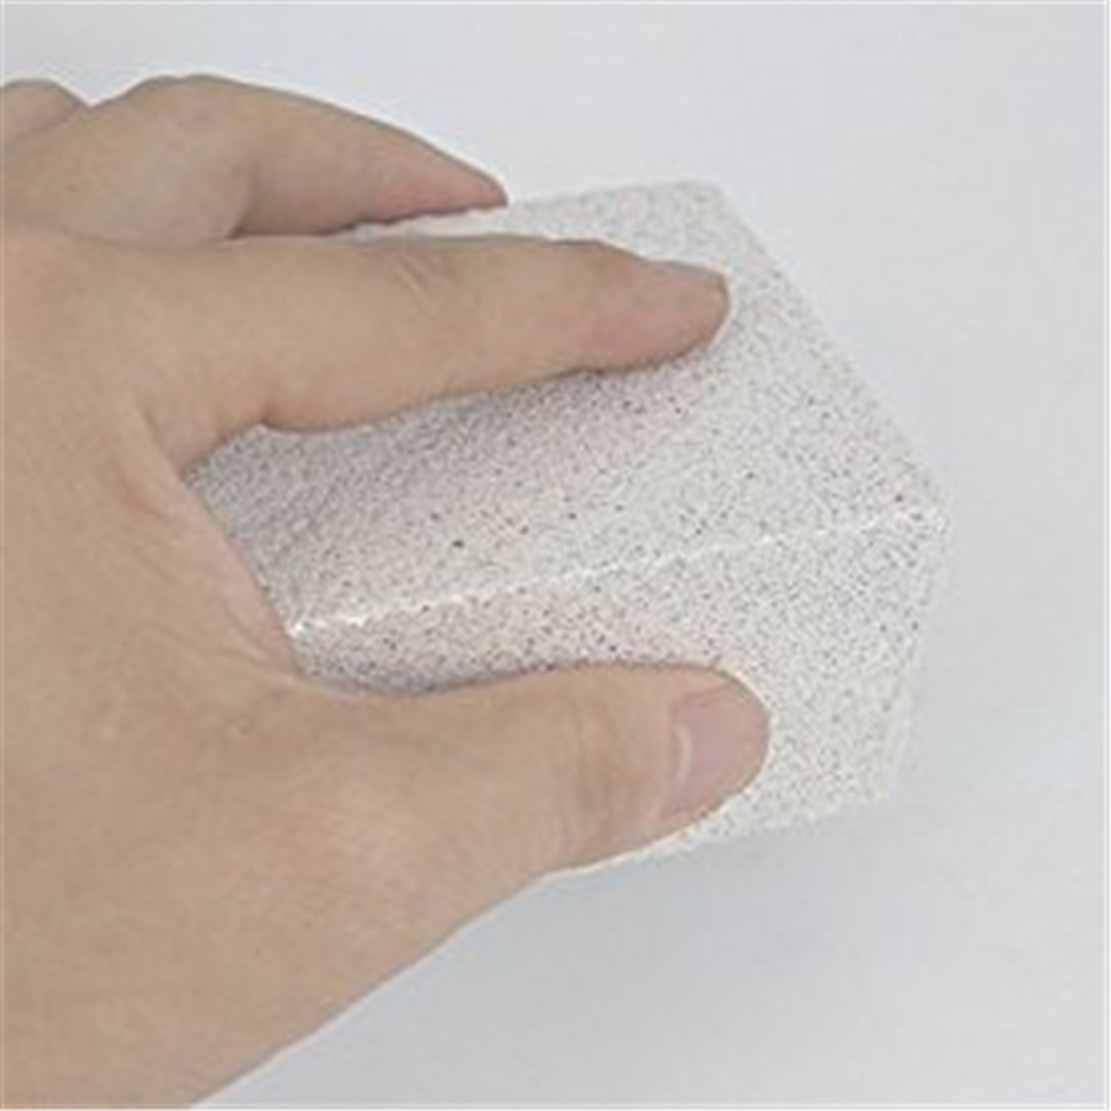 Grill Cleaner Pumice Stone Brush Block for Cleaning Barbecue Tool Removing Stains Rust Scrub Grease Kitchen Ware Porcelain